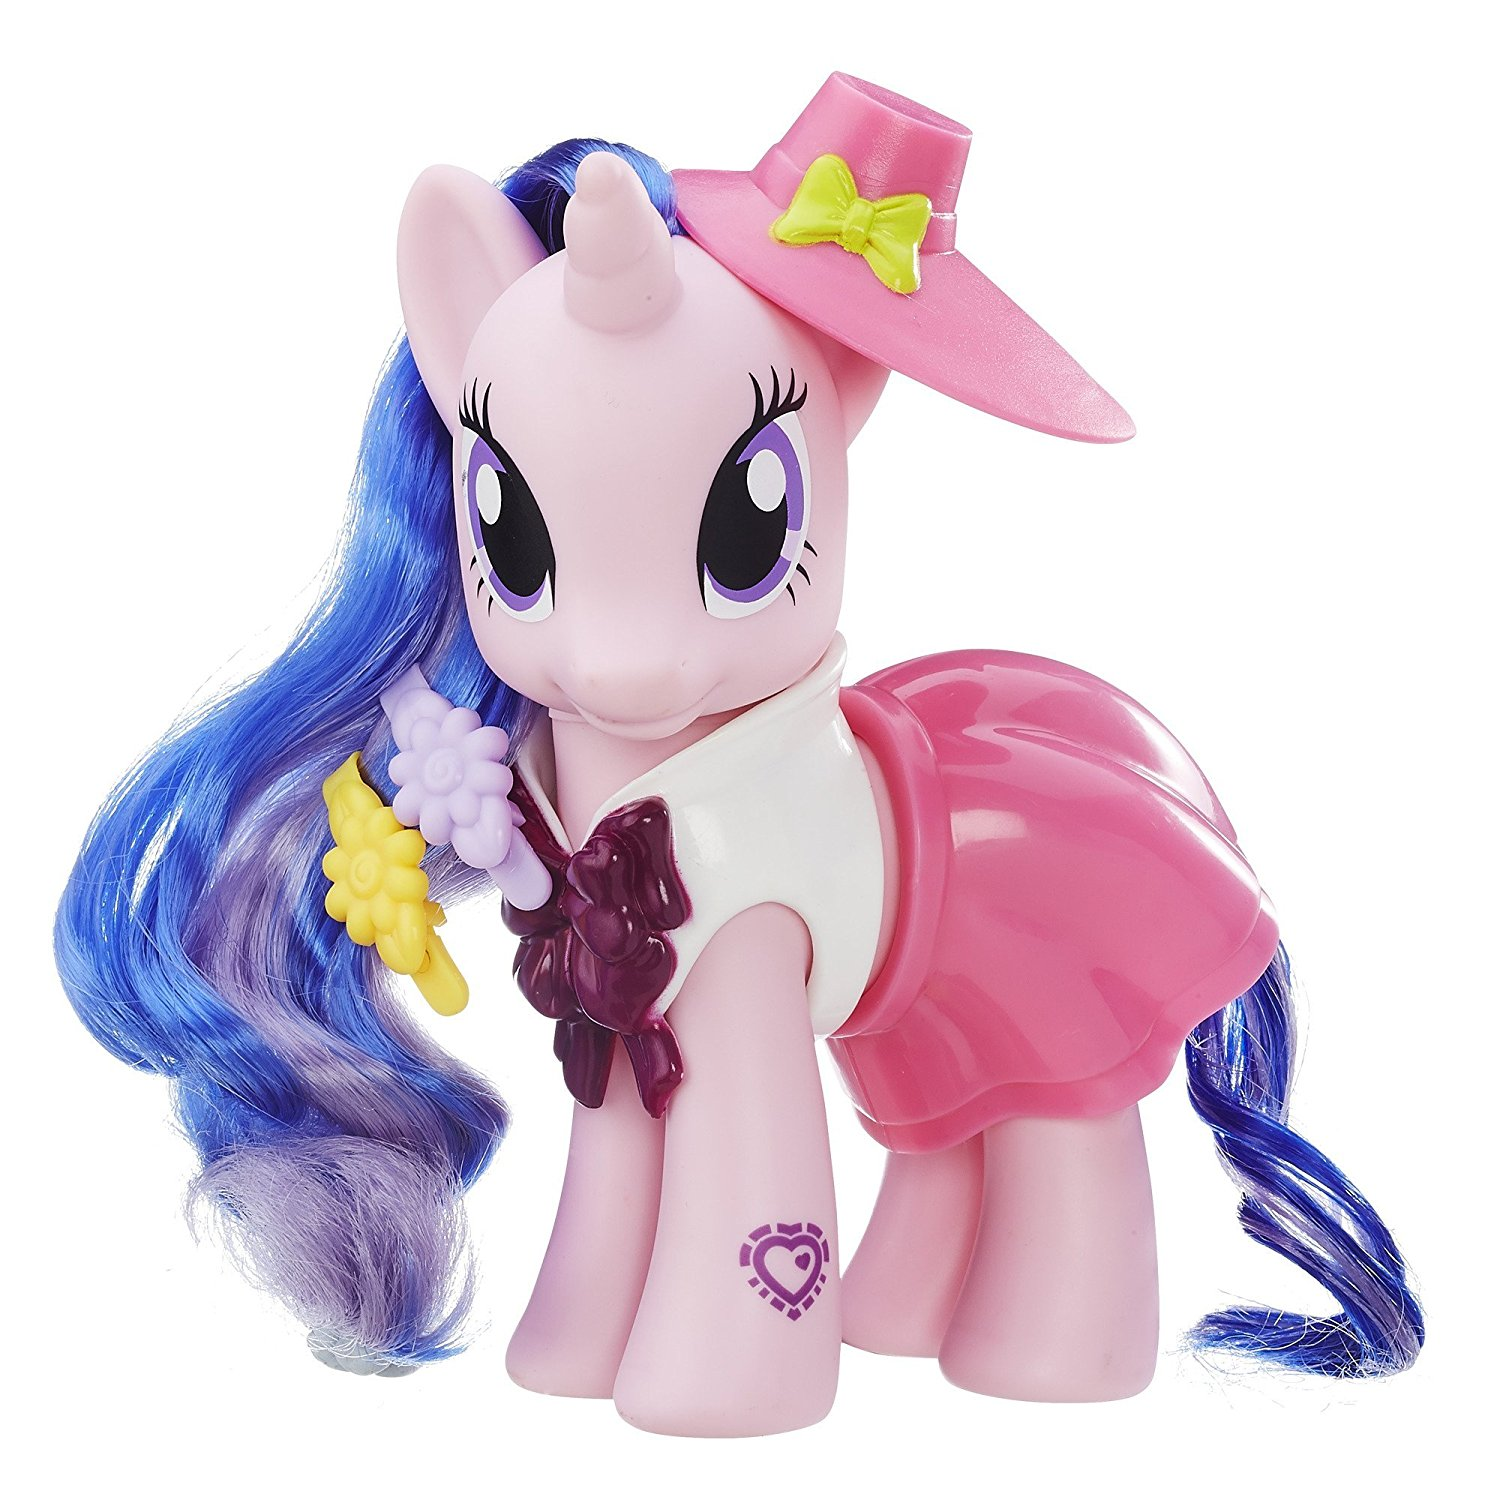 Explore Equestria 6-inch Fashion Style Set Royal Ribbon, Mix-and-match outfits create stylish looks By My Little Pony